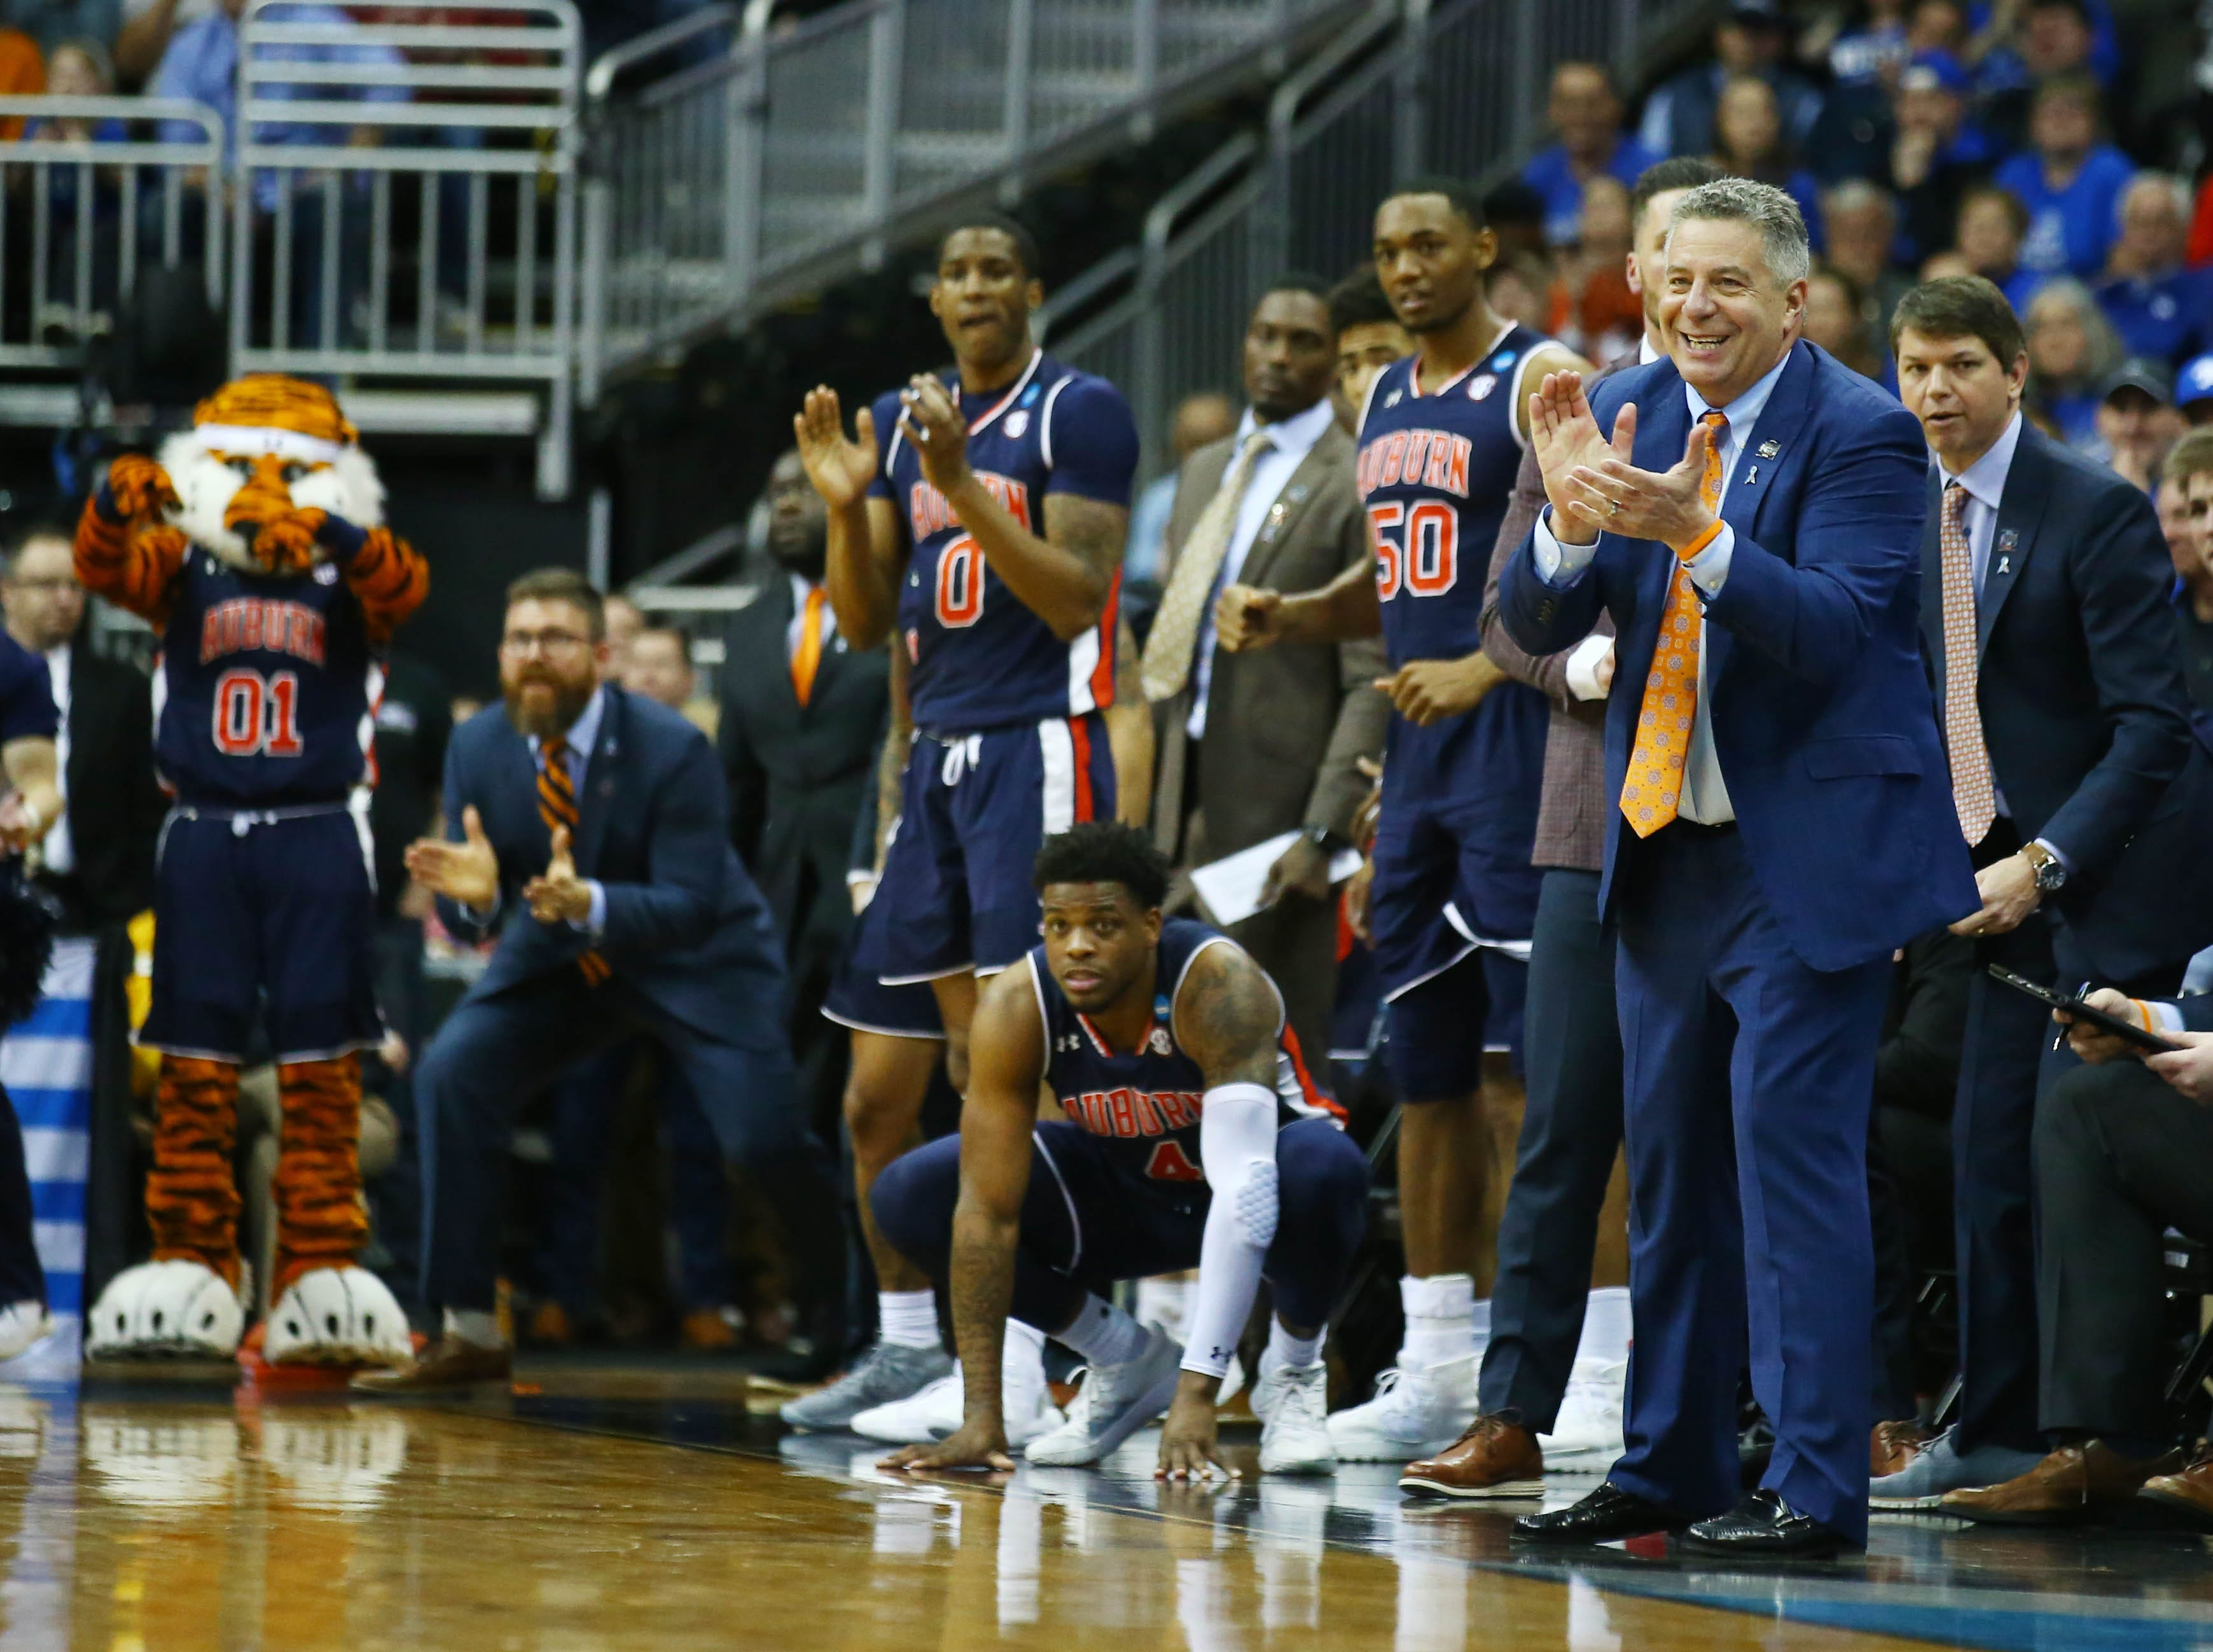 Mar 31, 2019; Kansas City, MO, United States; Auburn Tigers head coach Bruce Pearl reacts against the Kentucky Wildcats during the first half in the championship game of the midwest regional of the 2019 NCAA Tournament at Sprint Center. Mandatory Credit: Jay Biggerstaff-USA TODAY Sports